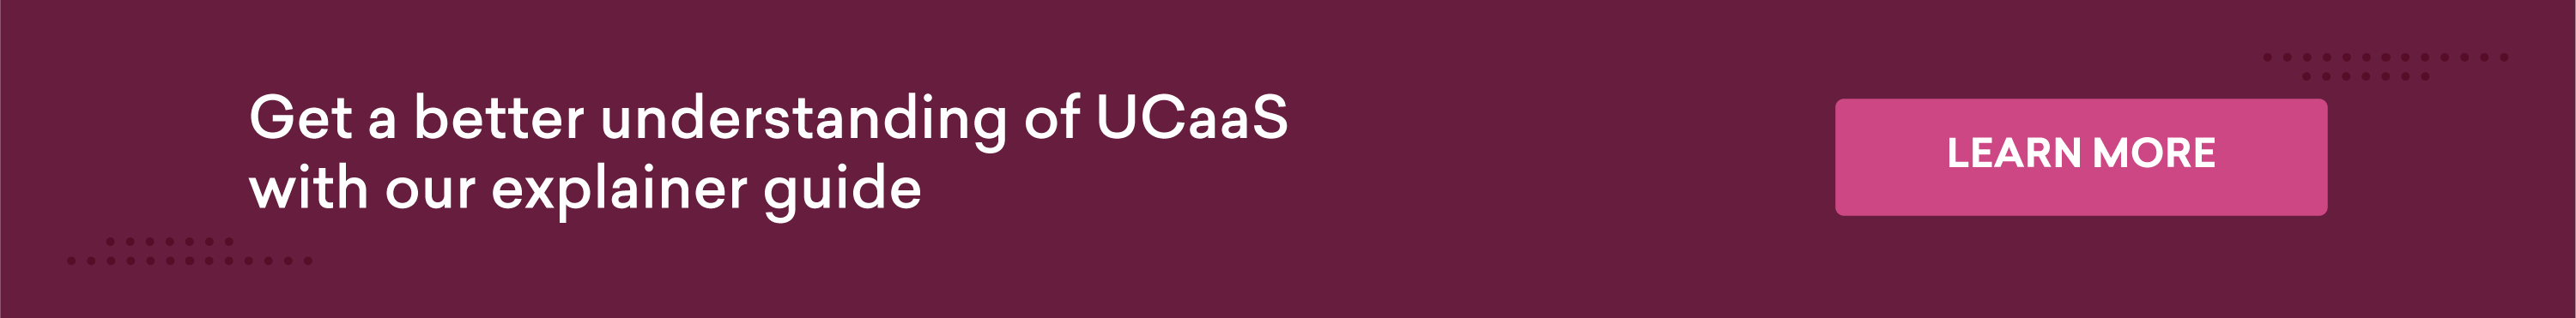 Get a better understanding of UCaaS with our explainer guide